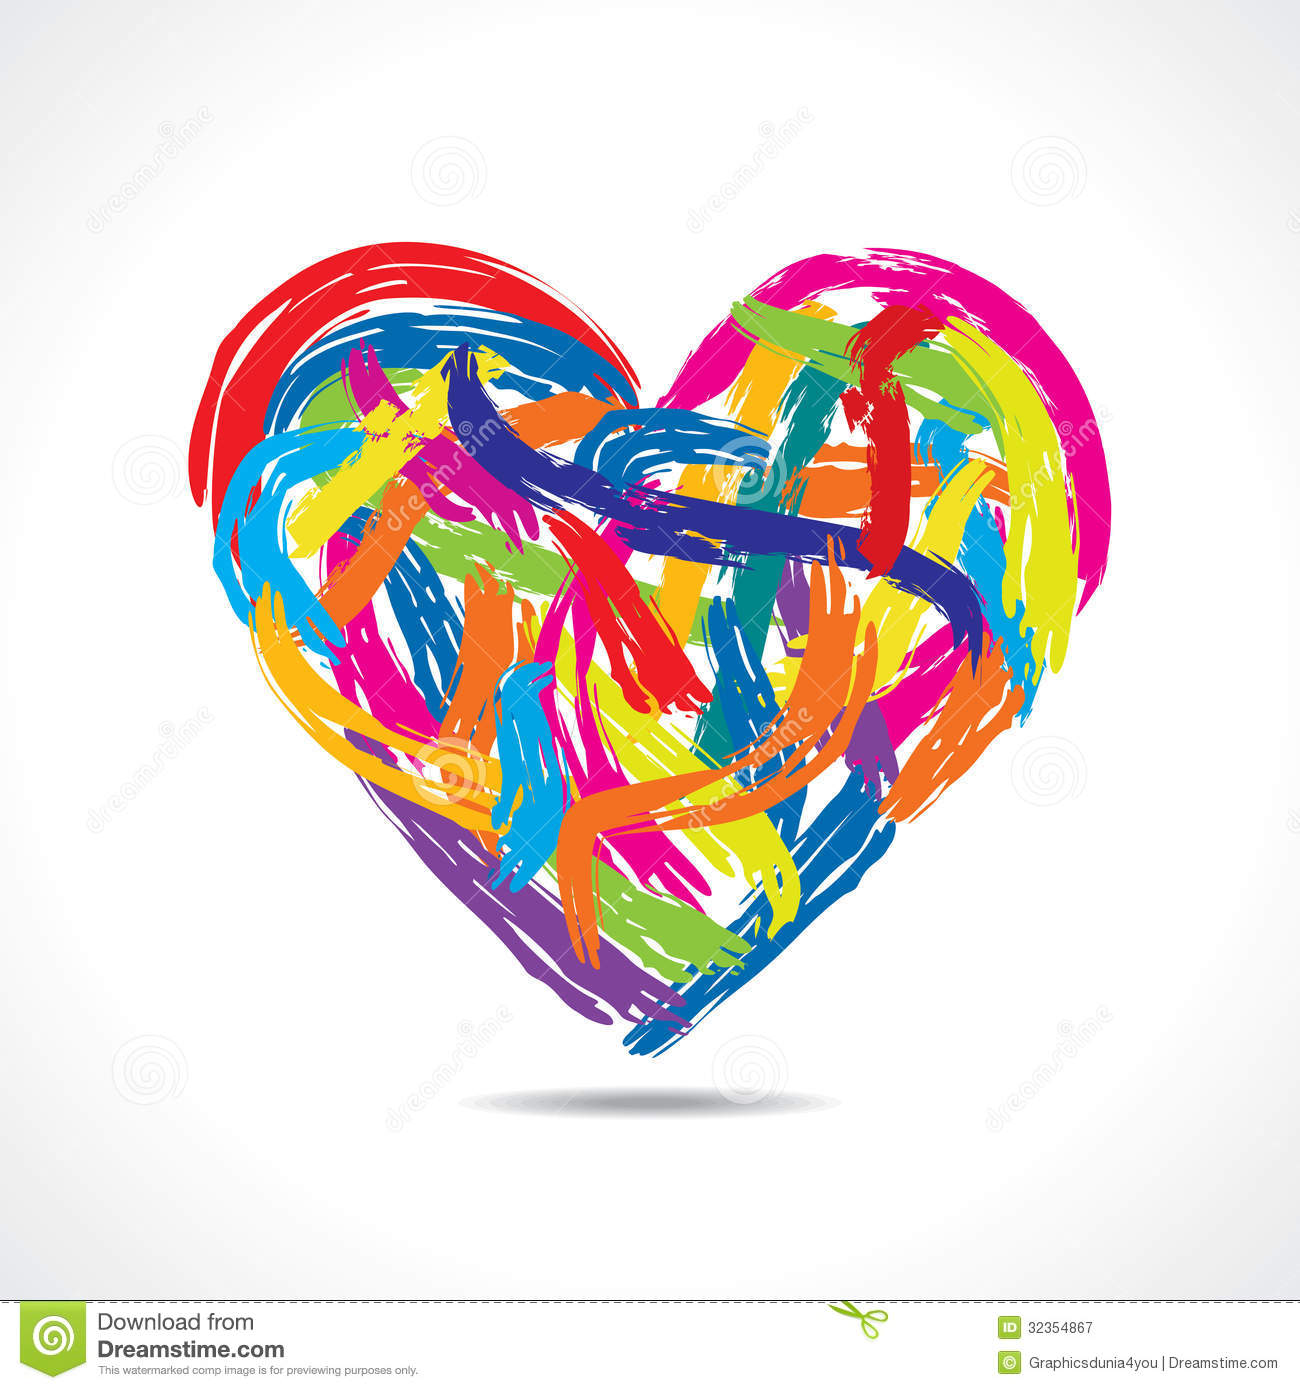 Colorful Heart With Paint Strokes Royalty Free Stock Photography ...